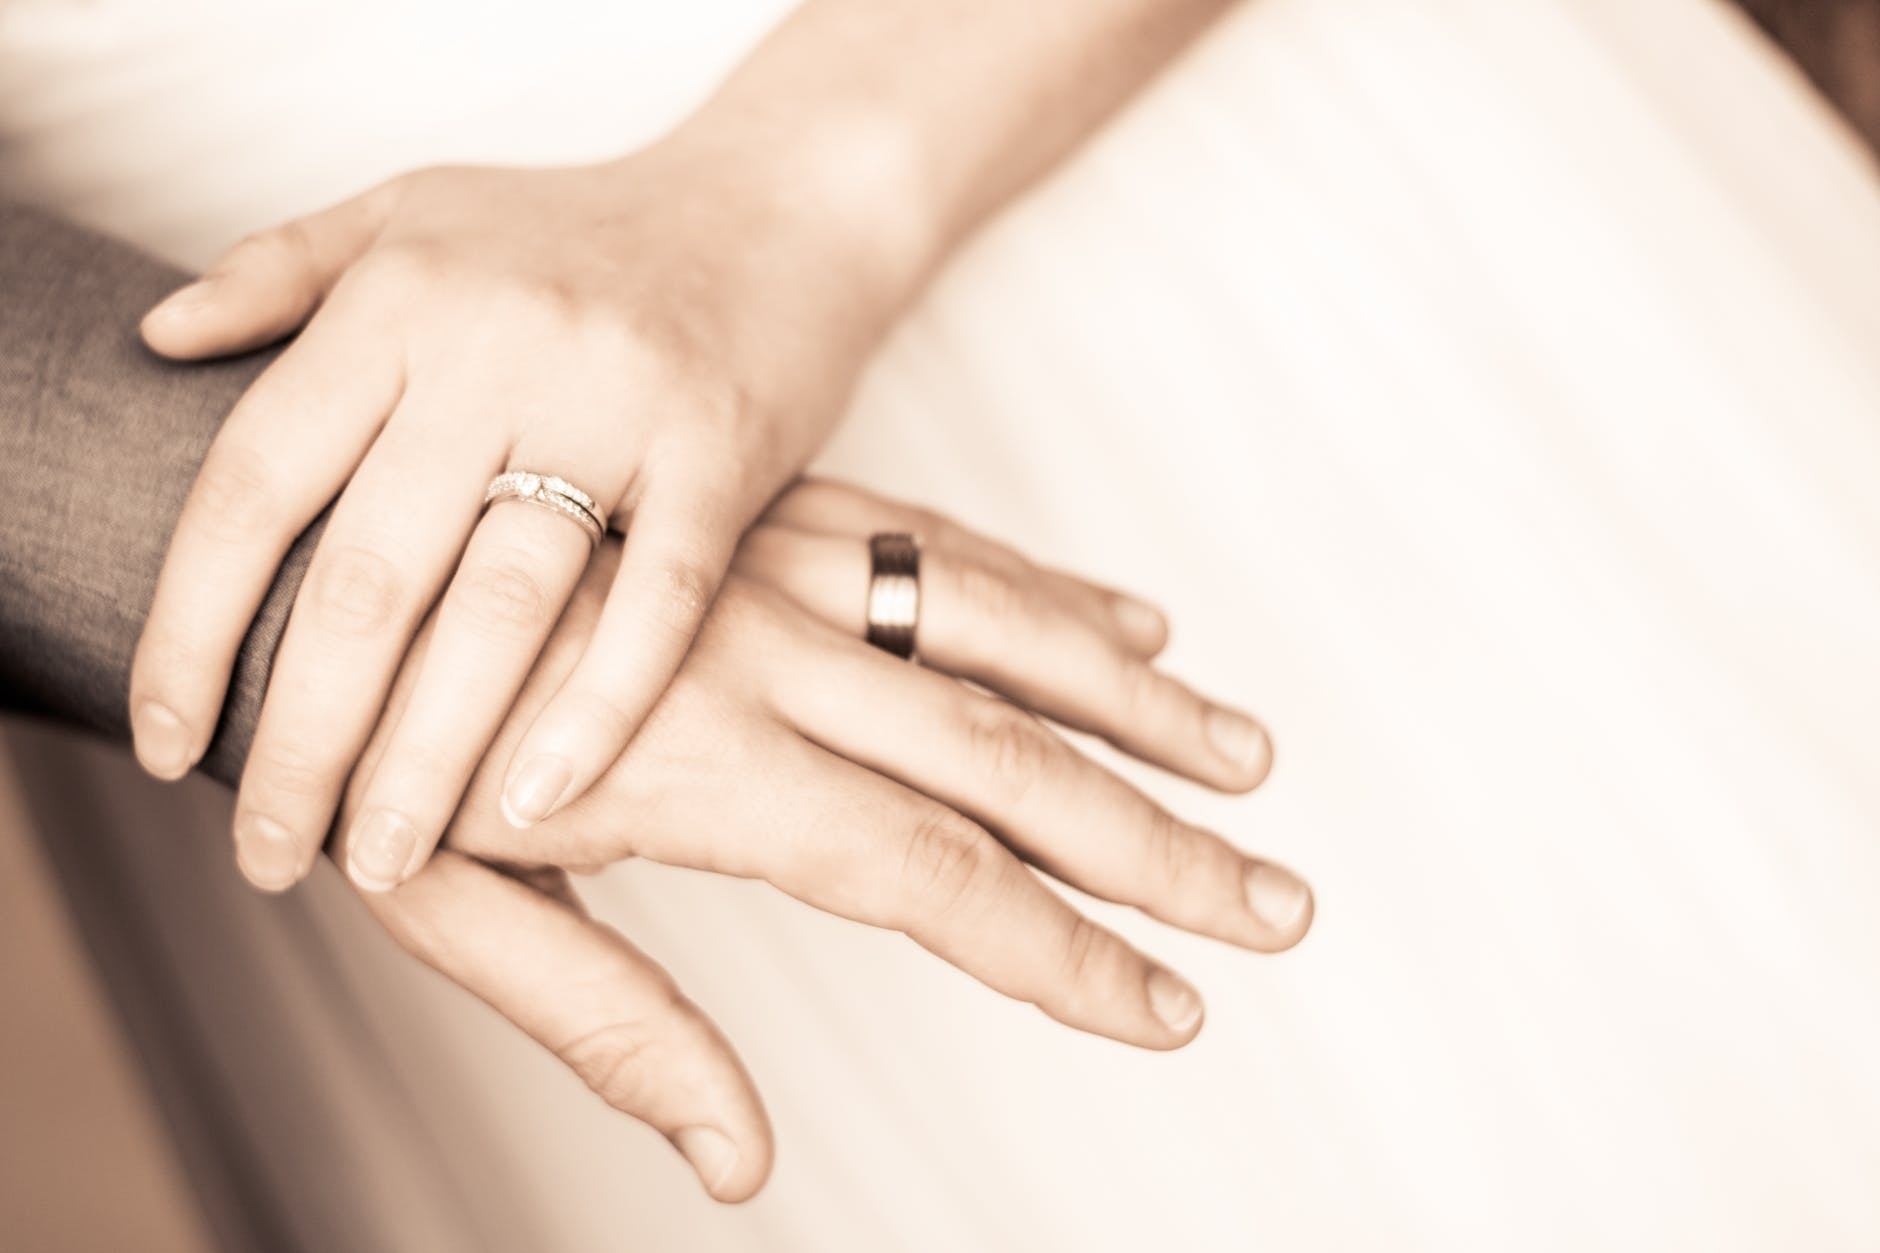 A couple holding their hands over each others showing their wedding bands.